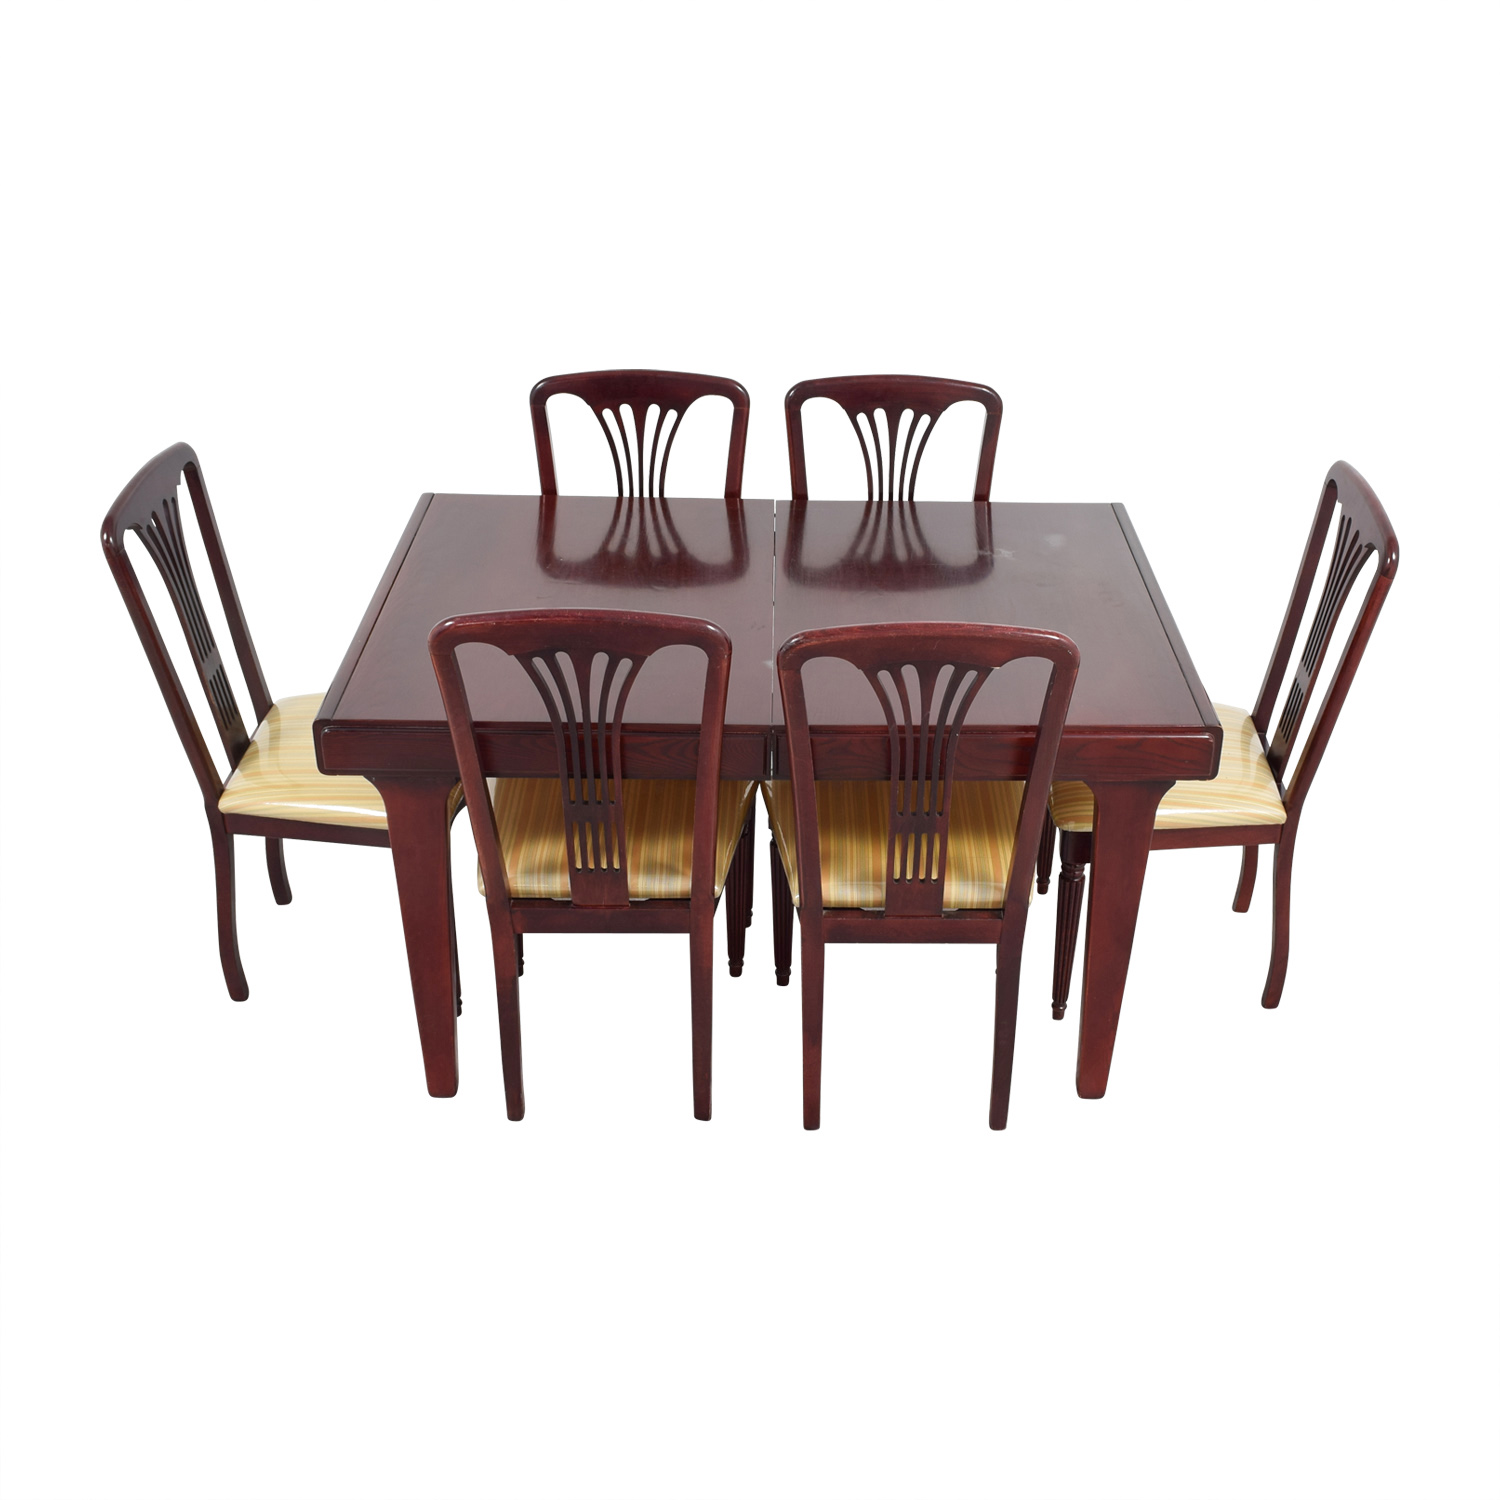 Vintage Canadian Wood Dining Set nyc